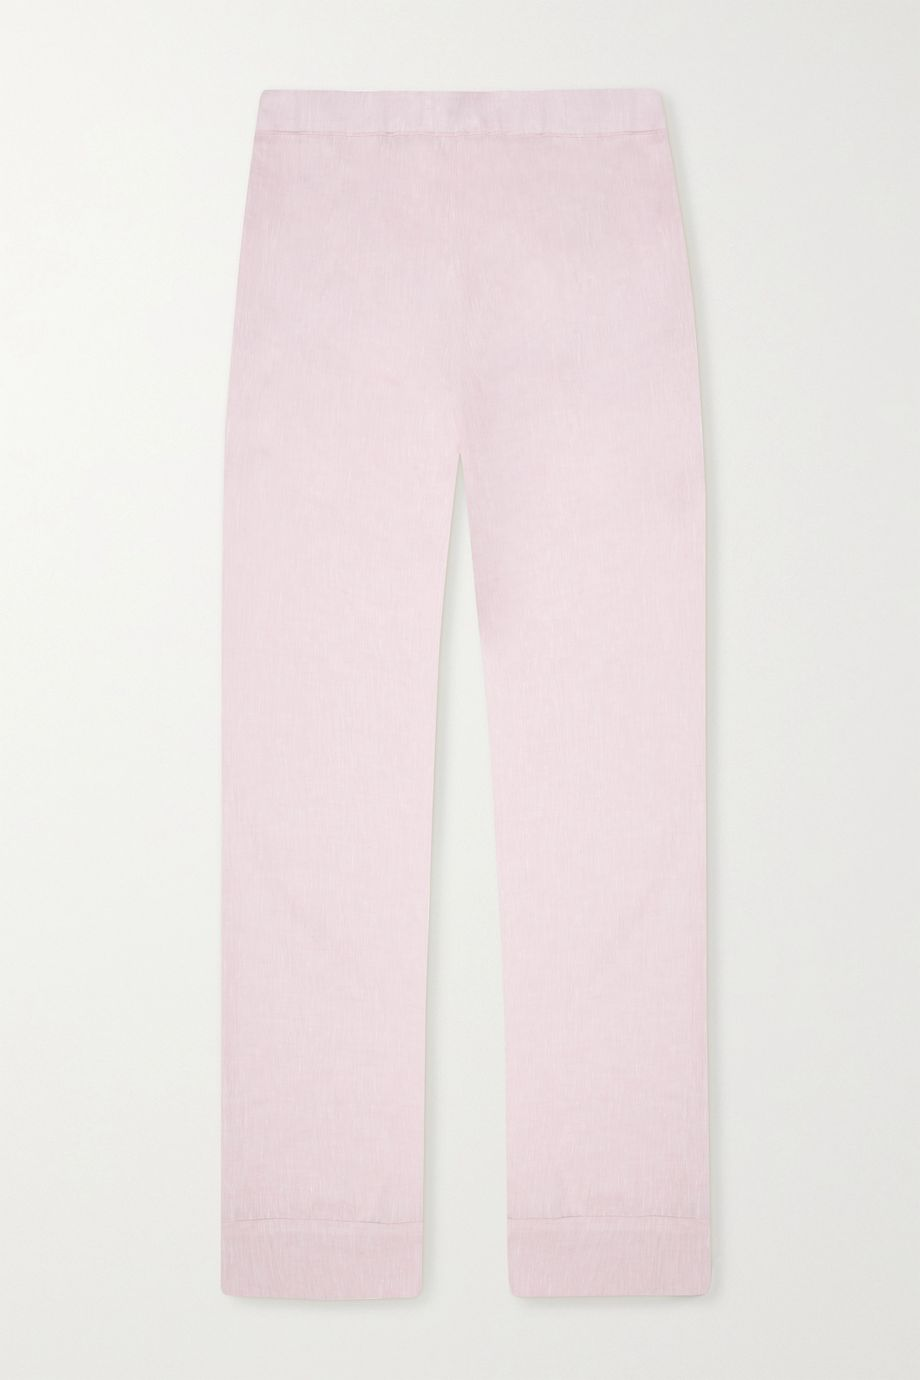 ASCENO London organic linen pants